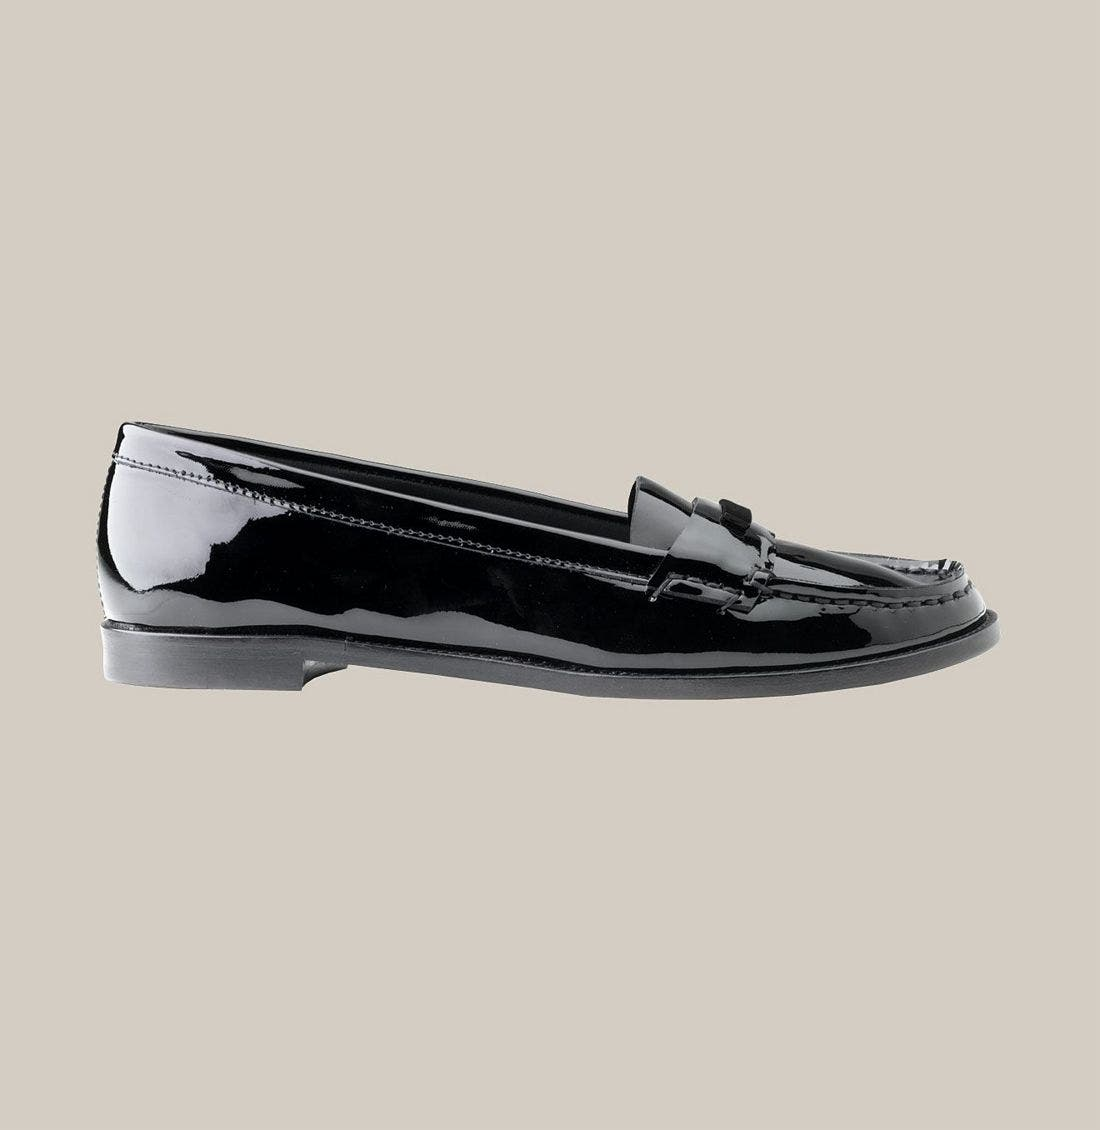 BURBERRY,                             Patent Leather Loafer,                             Alternate thumbnail 2, color,                             001